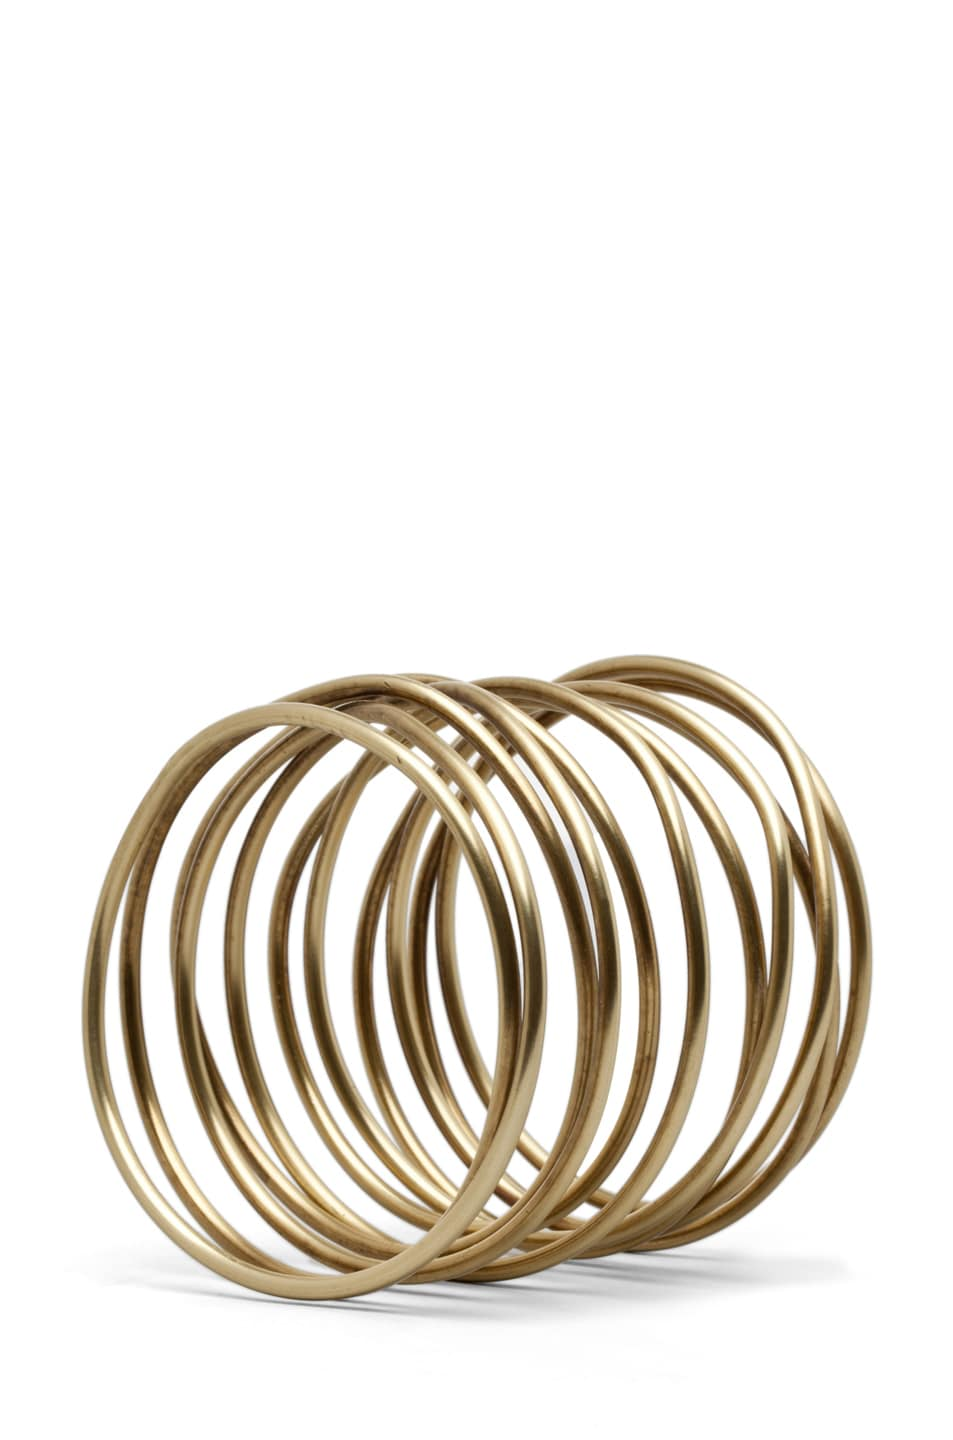 Image 3 of Kelly Wearstler Twisted Bracelet in Brass